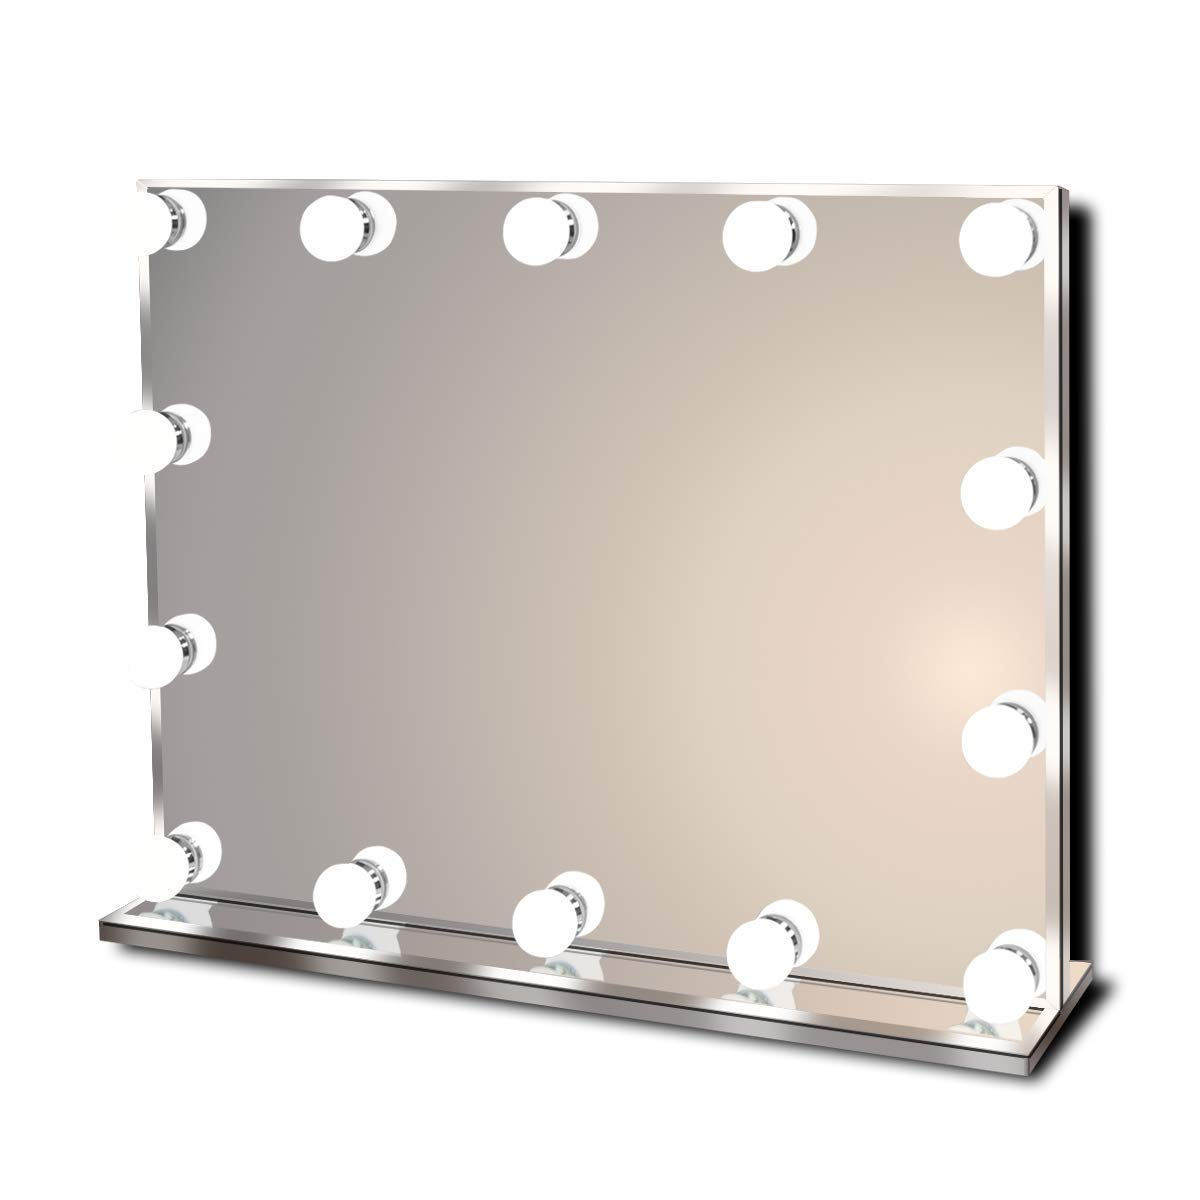 Make Up Station with (2) Vanity Mirrors